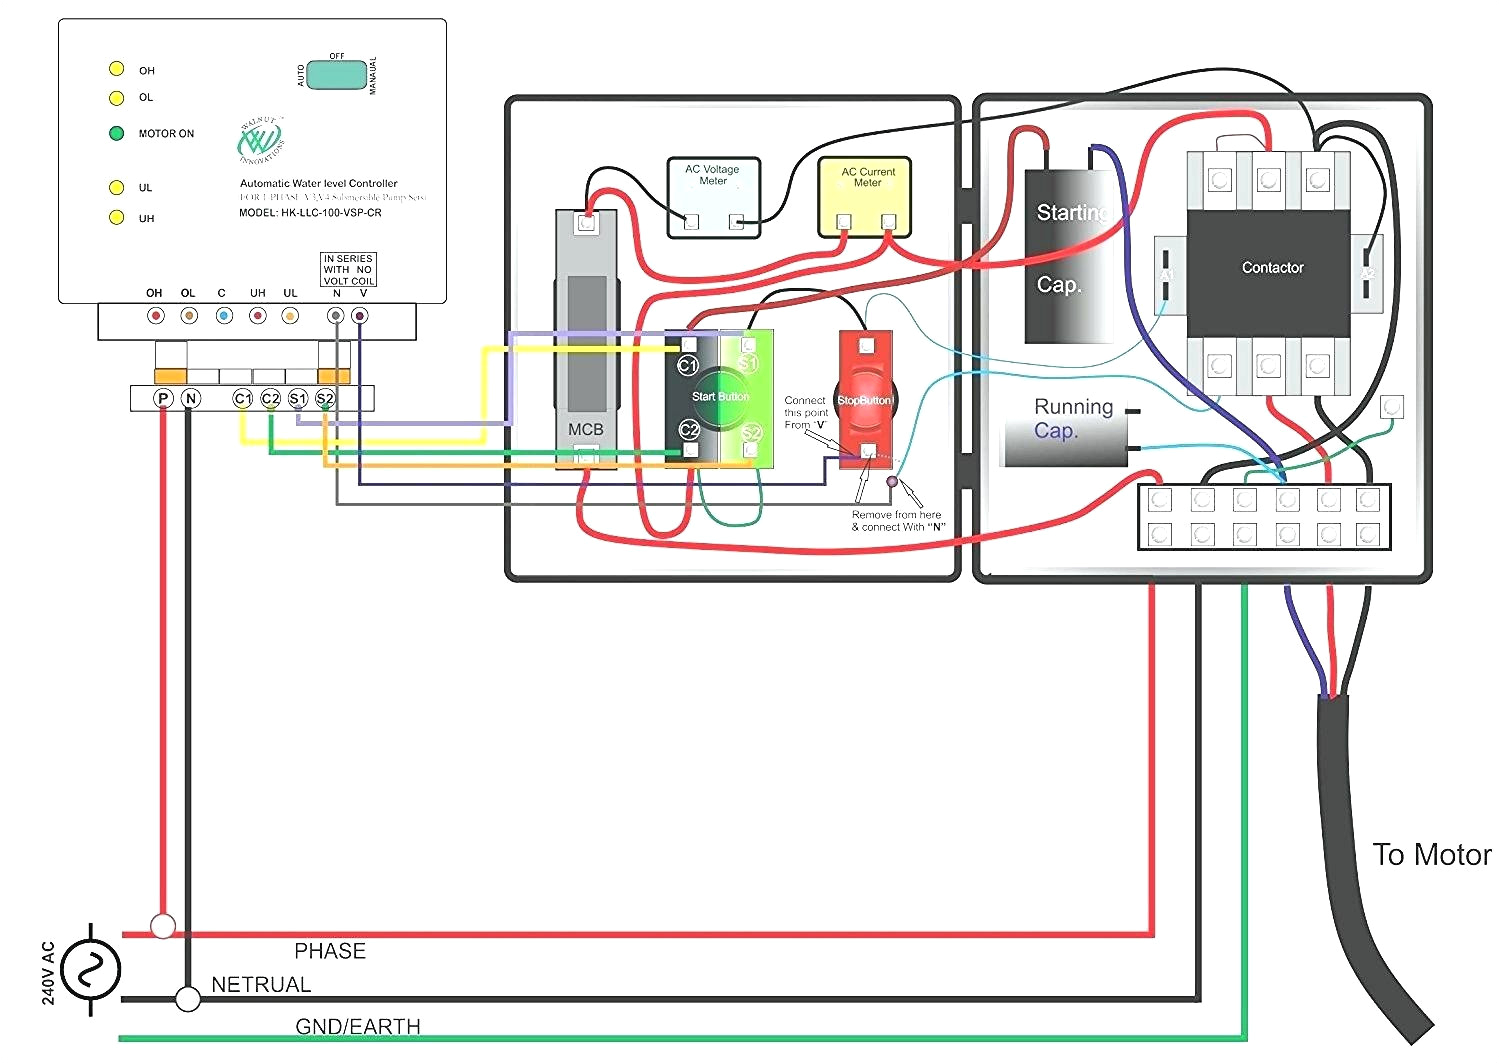 sump pump control panel wiring diagram fresh leq2152ee0 control panel diagram schematics wiring diagrams